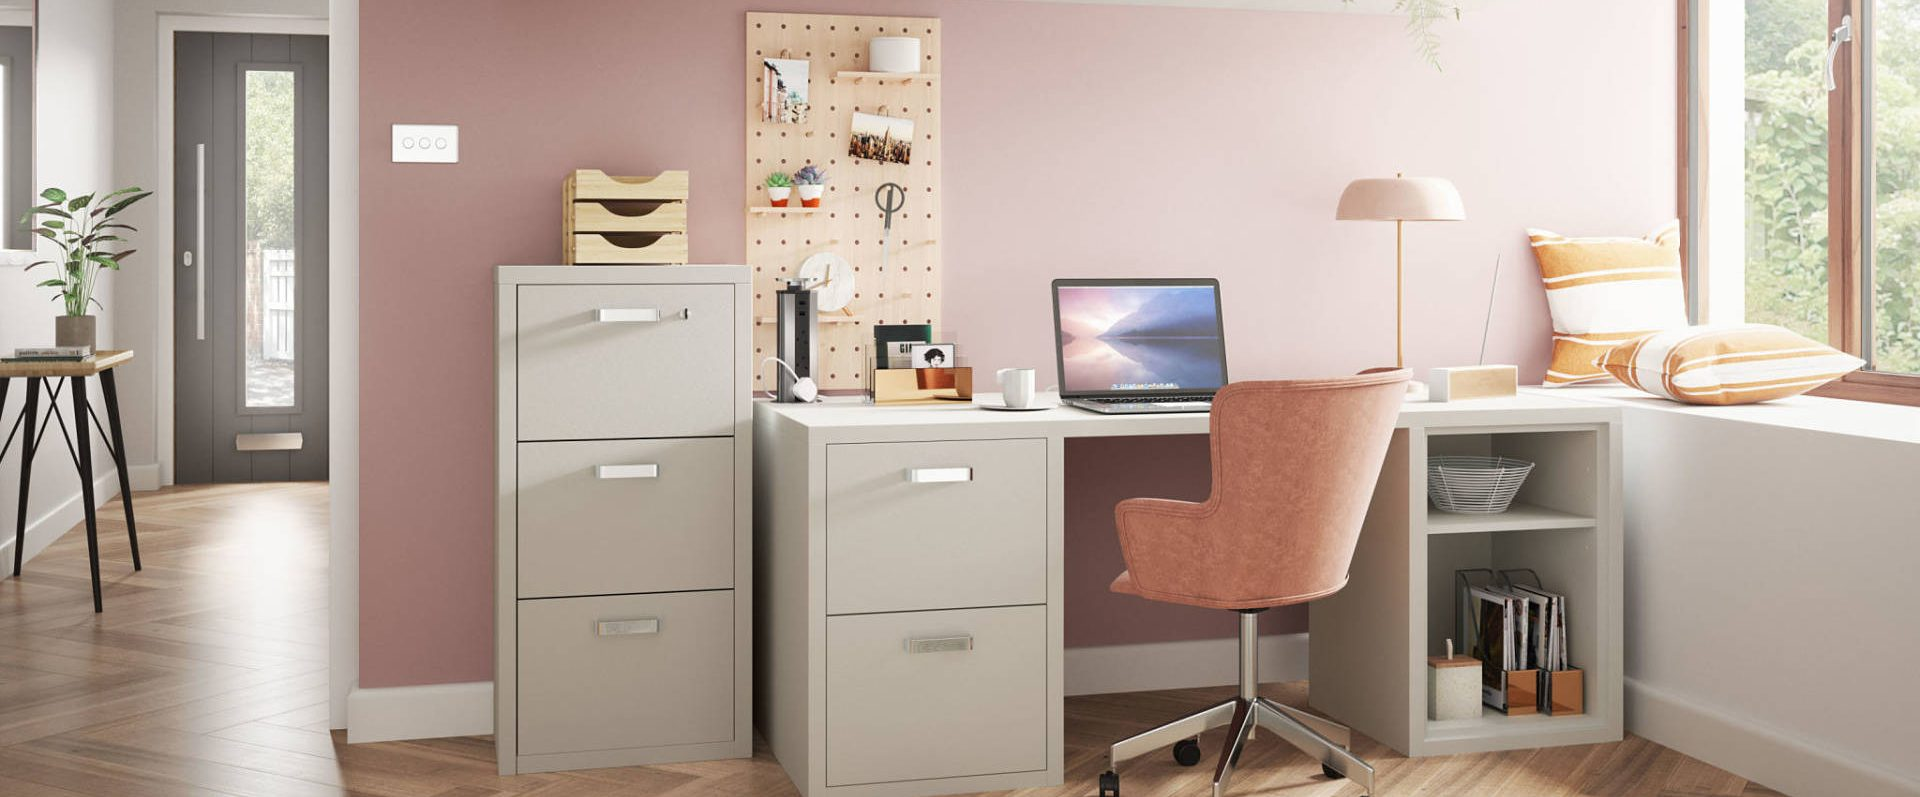 Home Office in hallway - Urbano range by Symphony